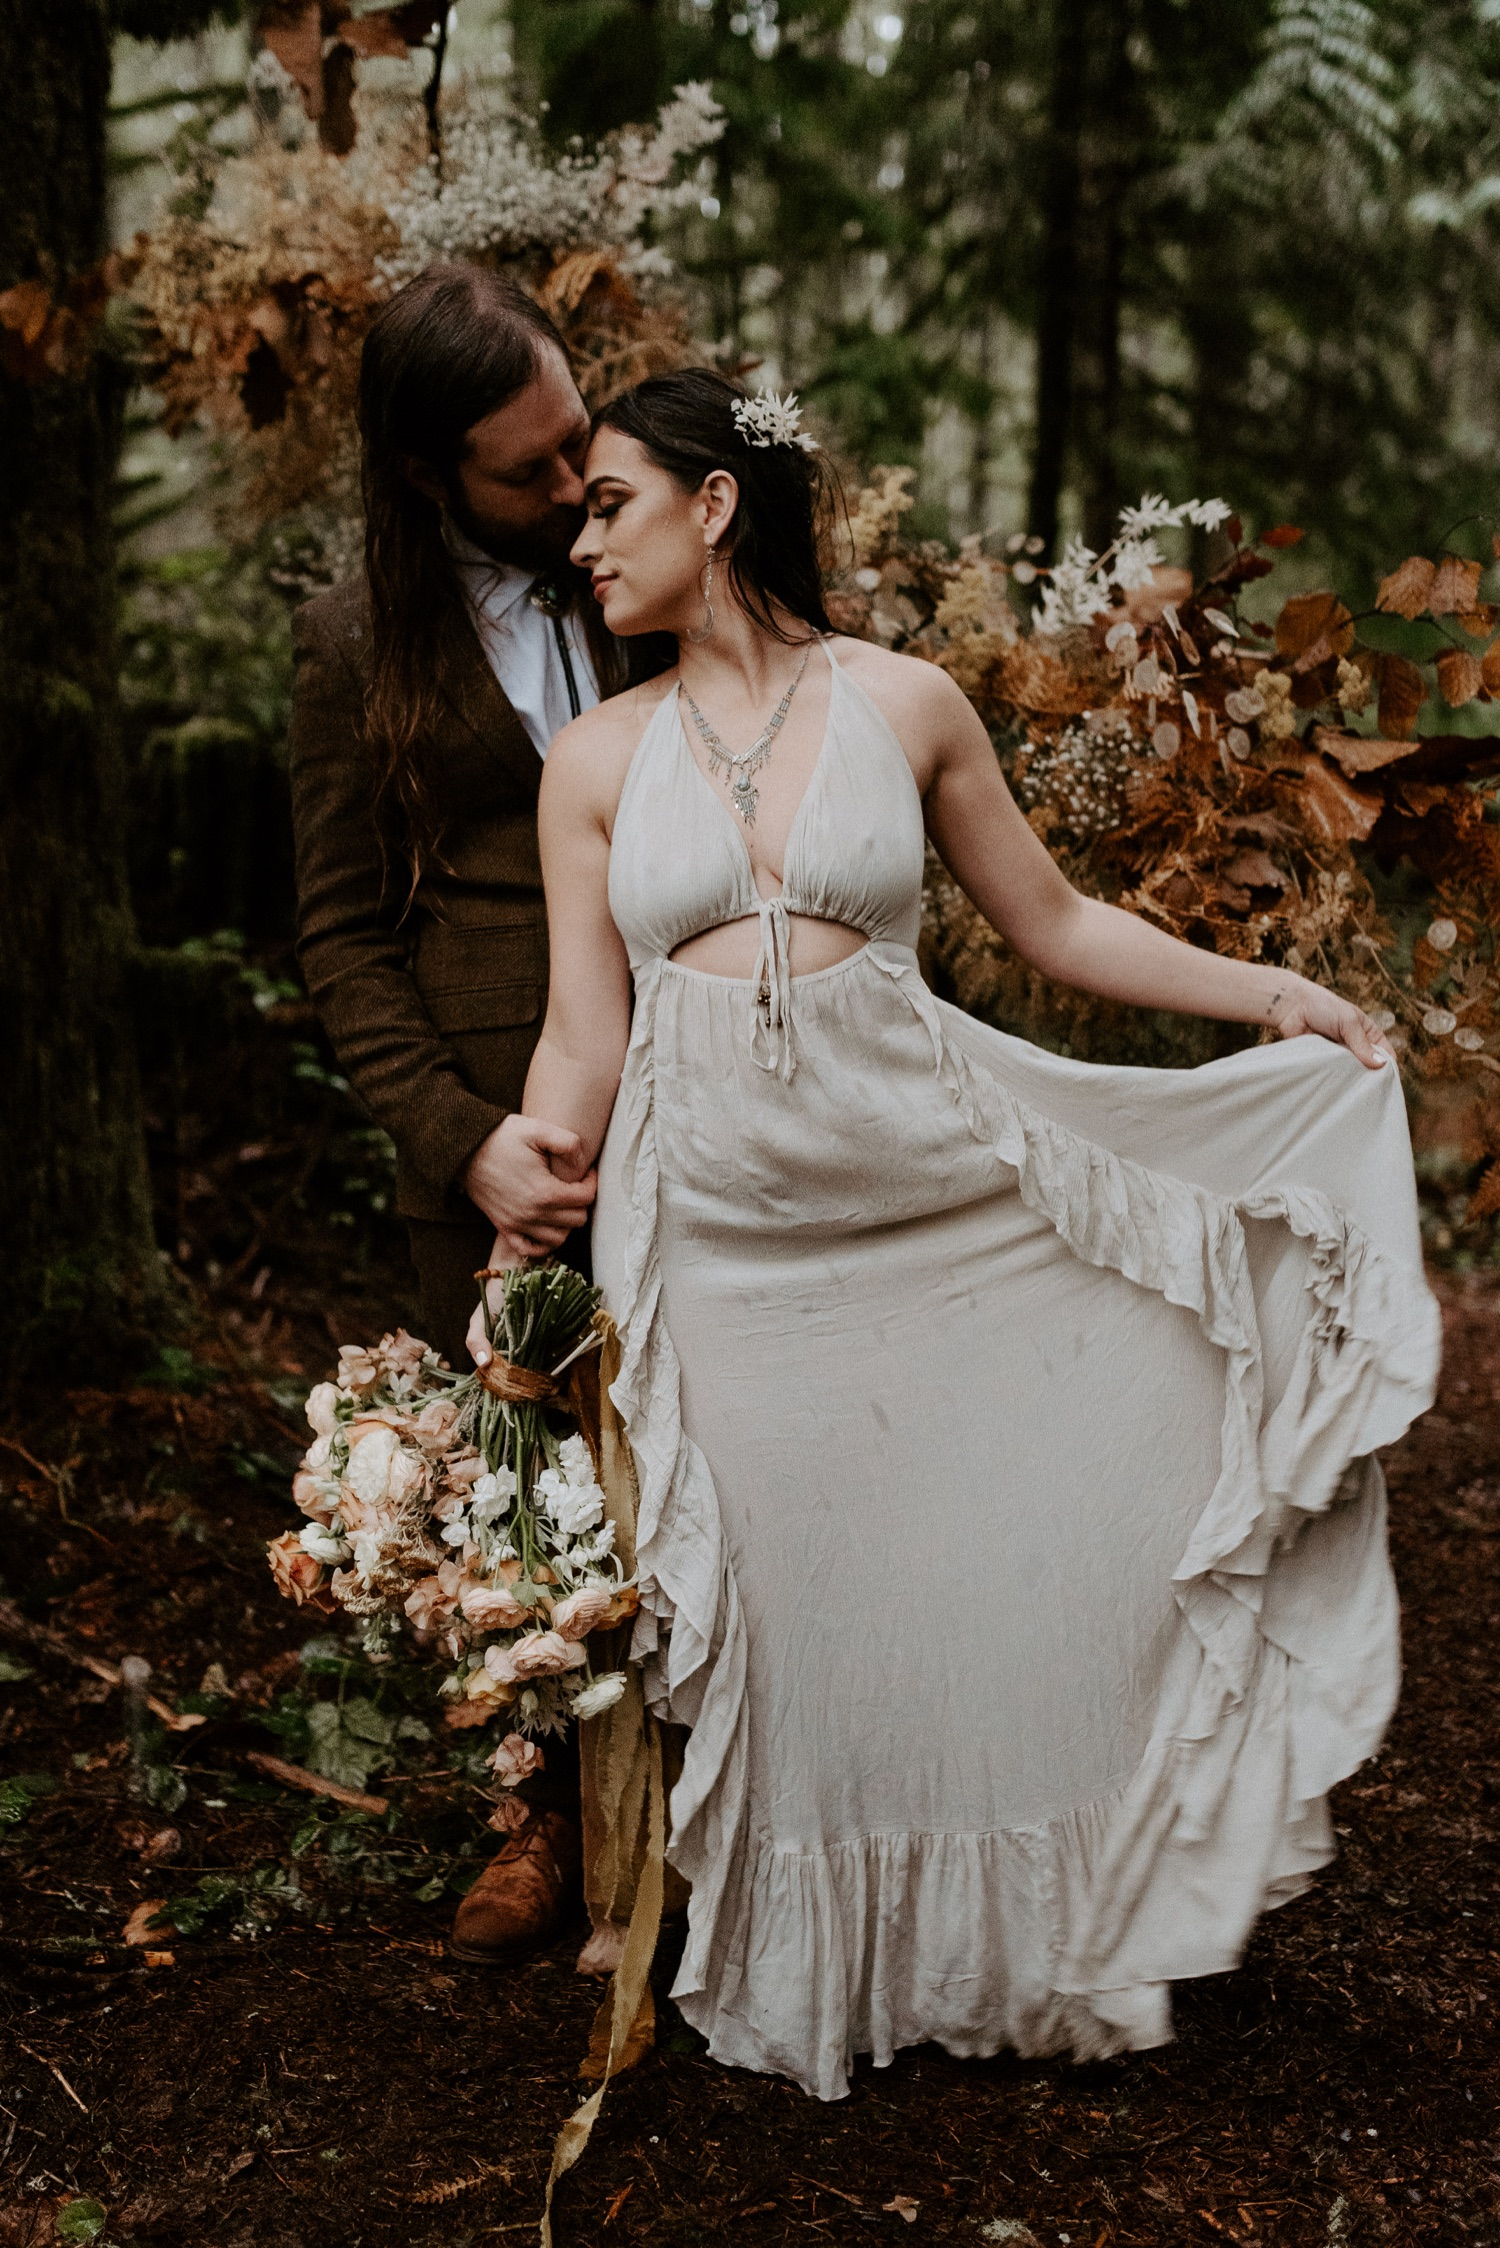 The Woodlands House Sandy Oregon Elopement Portland Elopement Photographer PNW Adventurous Elopement Anais Possamai Photography 024